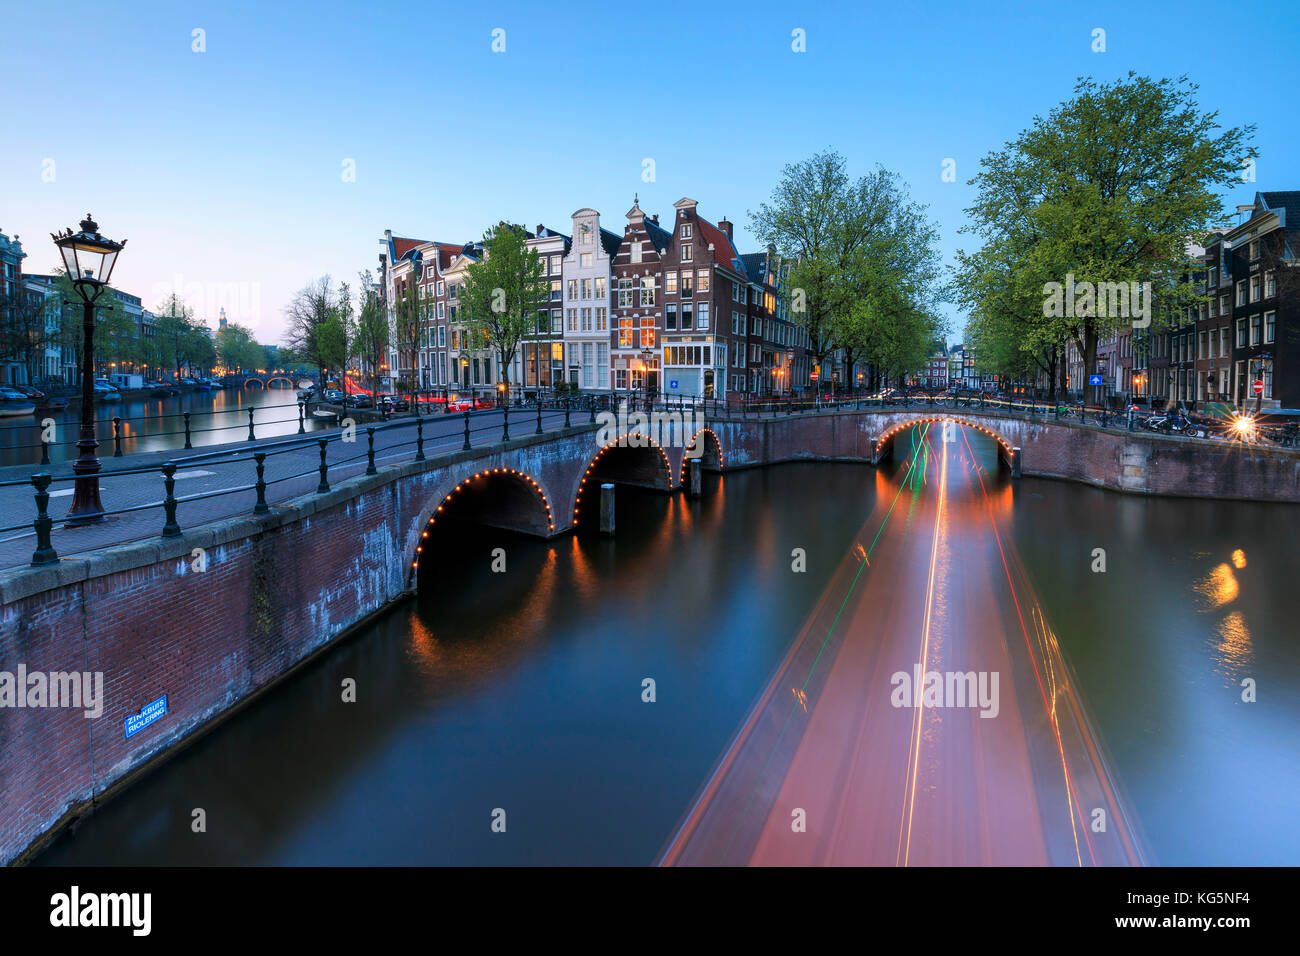 Dusk lights on the typical buildings and bridges reflected in a typical canal Amsterdam Holland The Netherlands Stock Photo